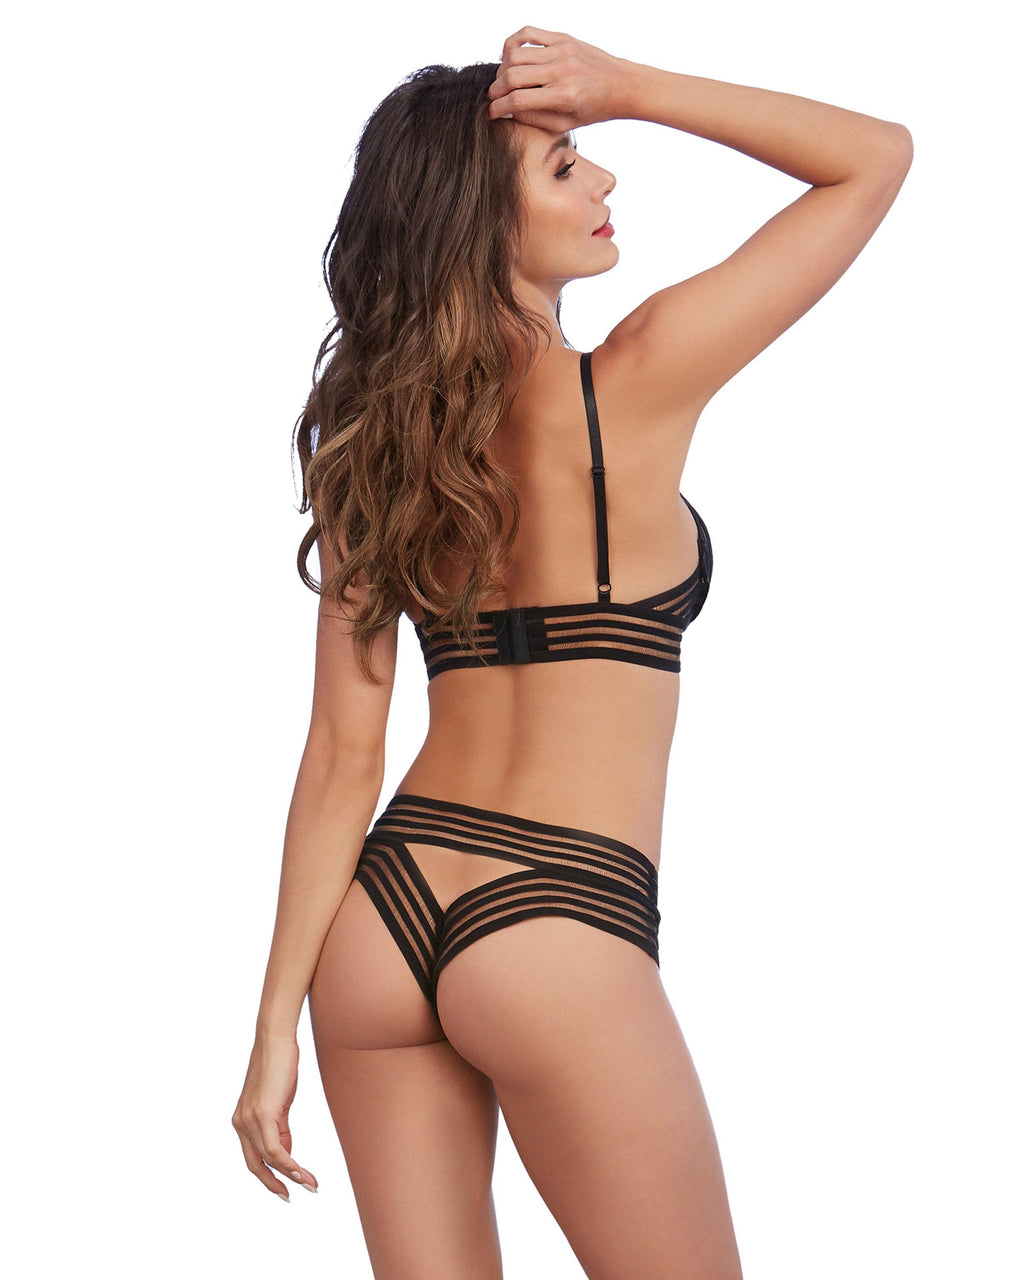 Sheer Stripped Elastic Underwire Bra and Matching Open-Back Panty Bra Set Dreamgirl International